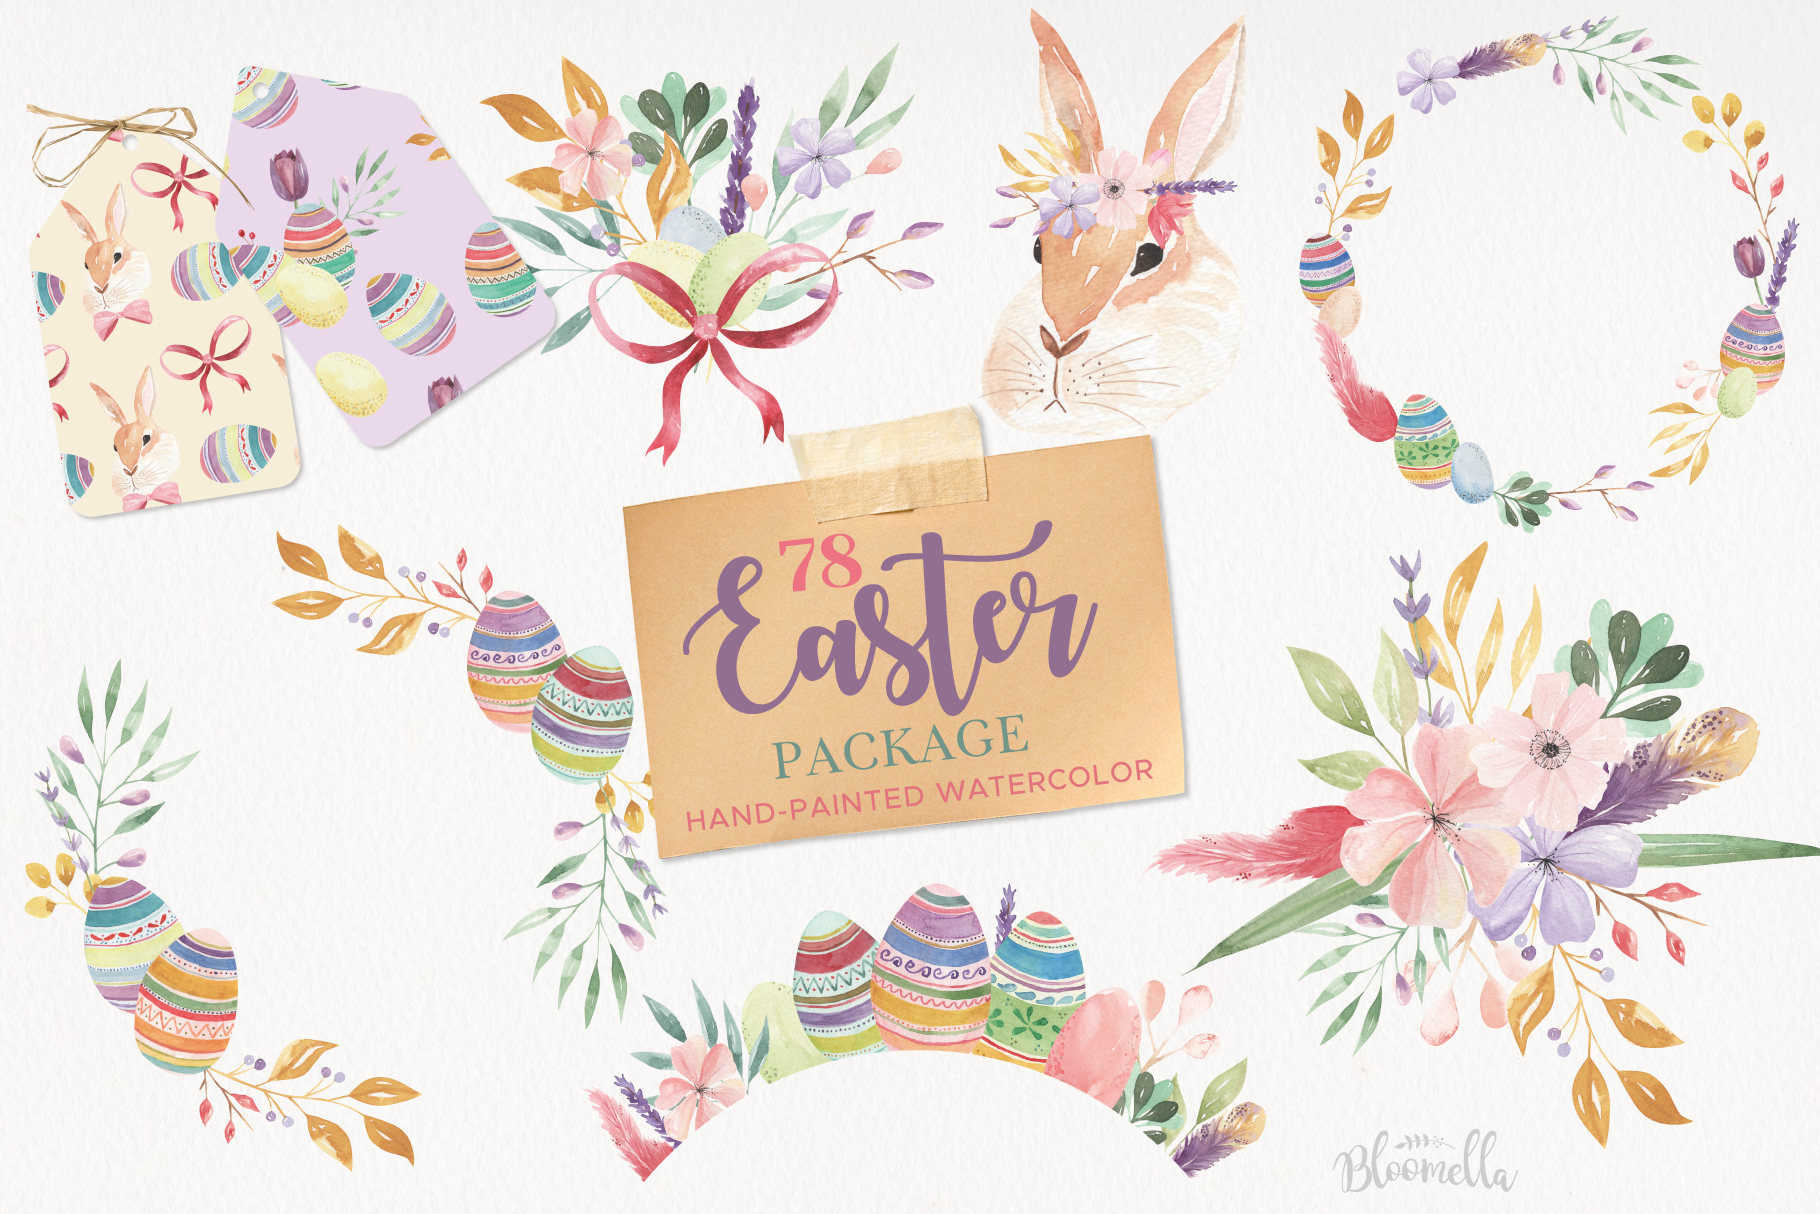 Easter Egg HUGE Bunny Watercolor Floral Spring Clipart Kit example image 1